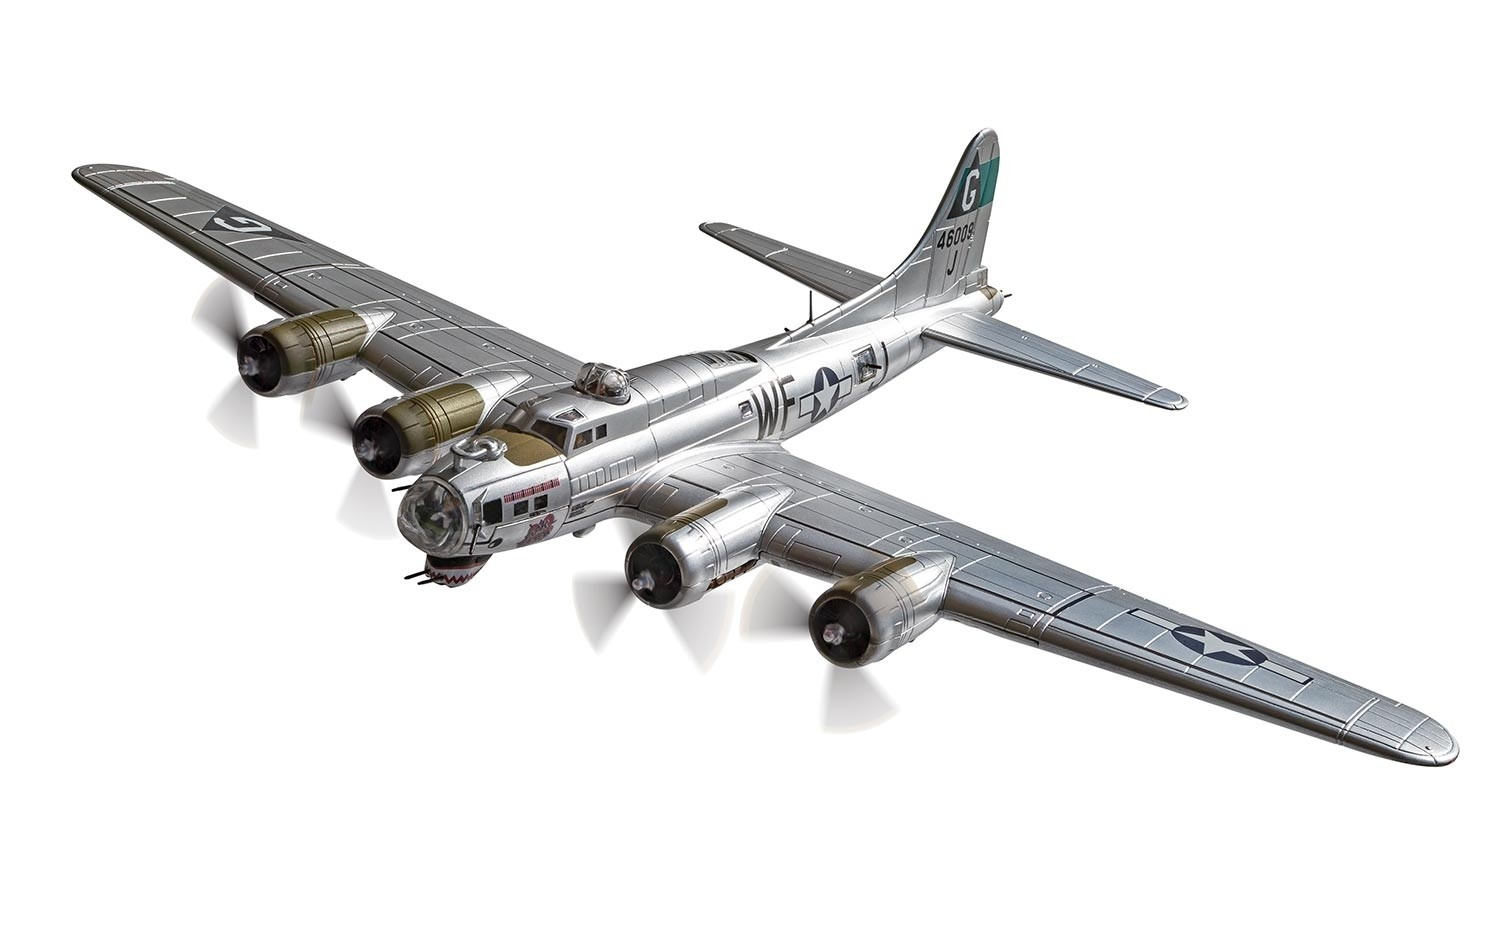 AA33318 Boeing B-17G Flying Fortress 44-6009 'Flak Eater', 364th